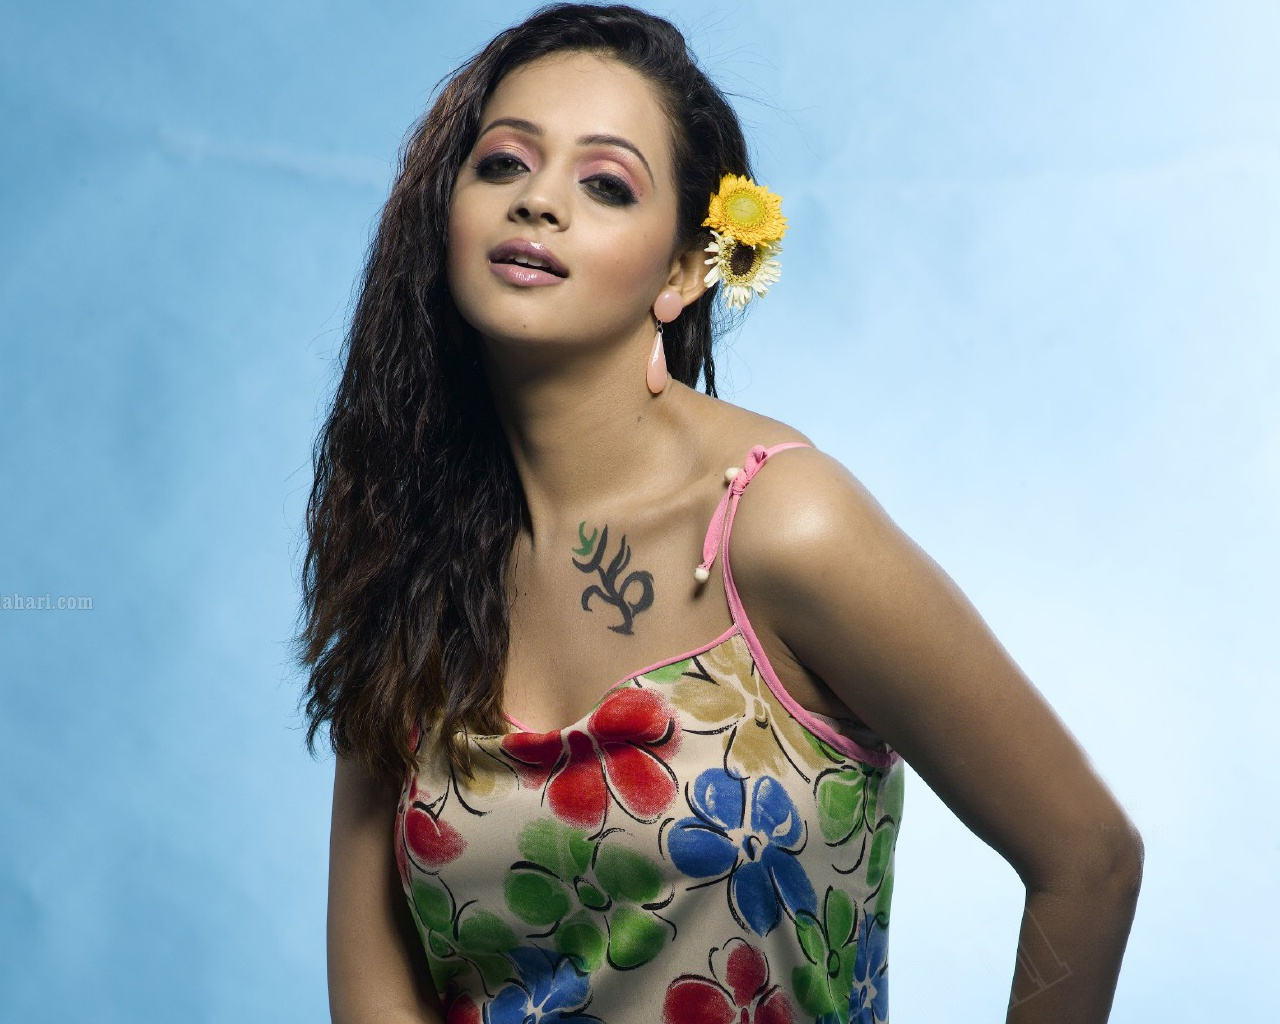 Bhavana Tamil Girl Wallpapers In Jpg Format For Free Download